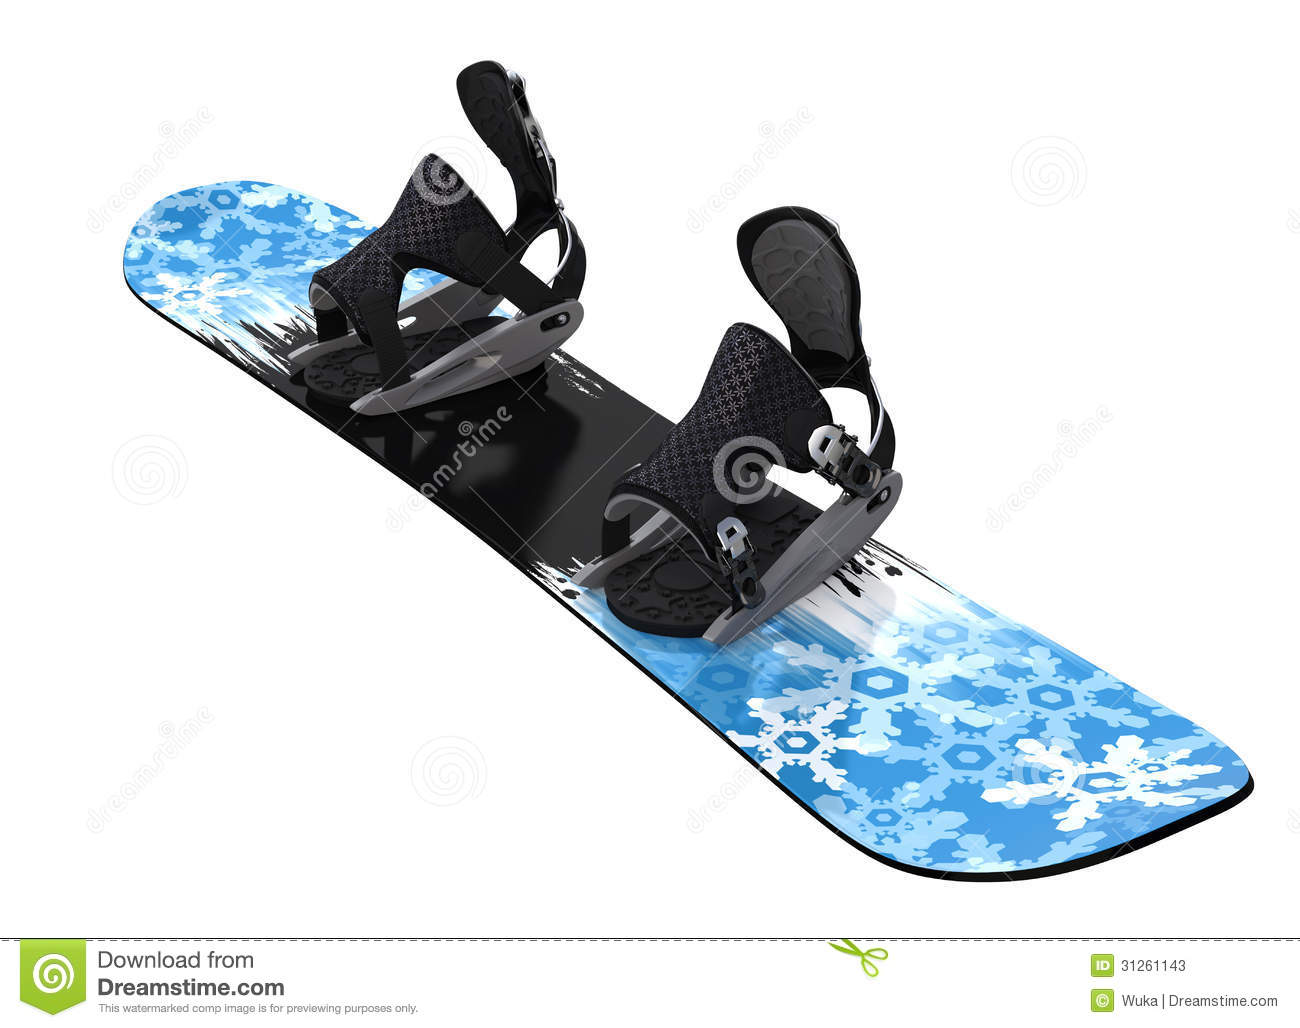 Snowboard isolated on white